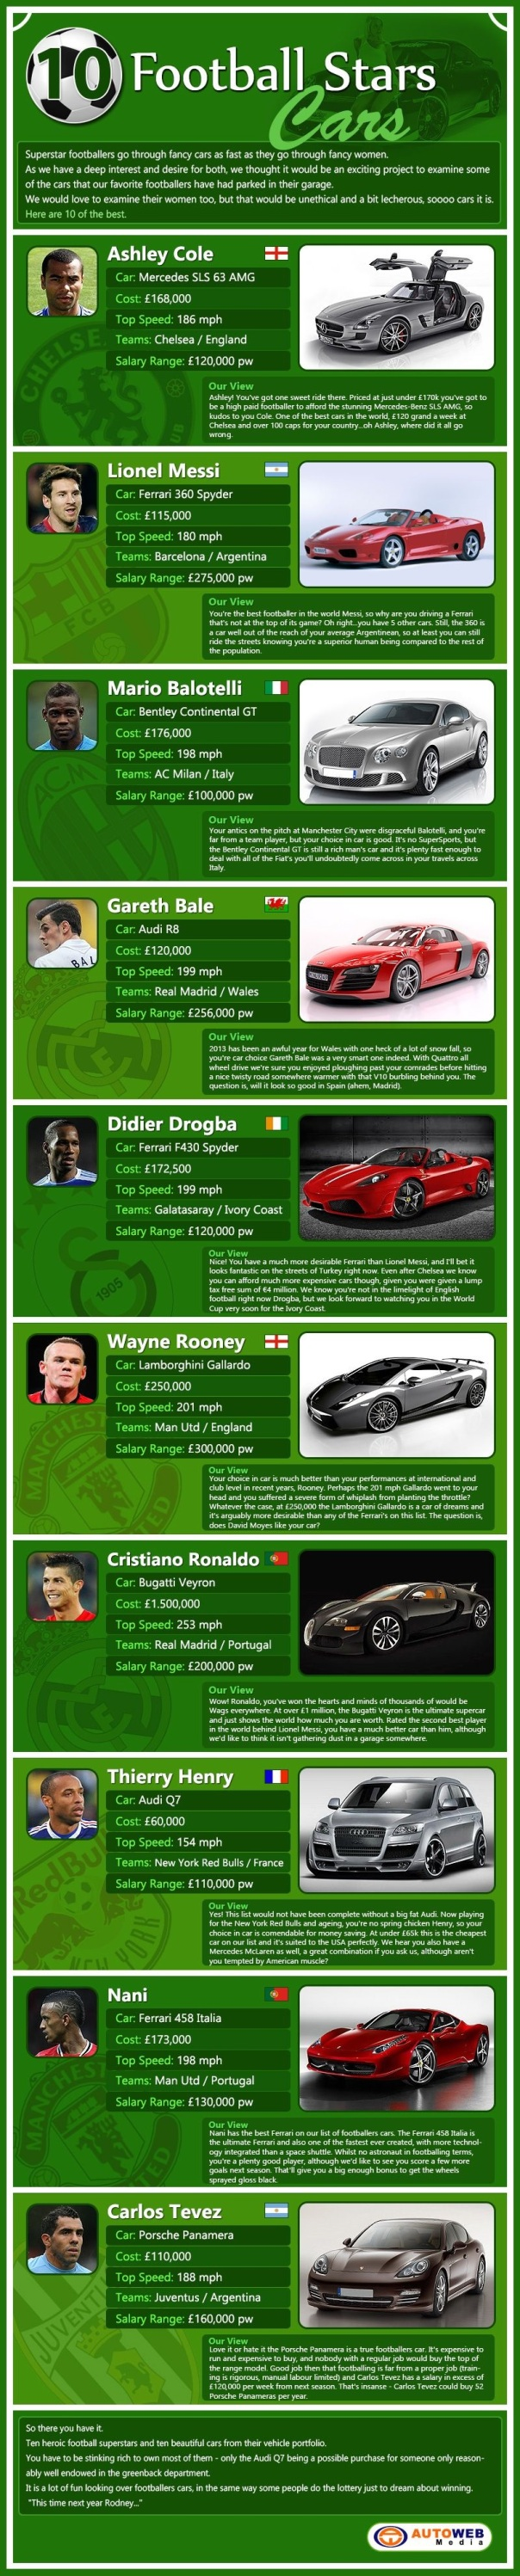 Football-Stars-Cars-infographic